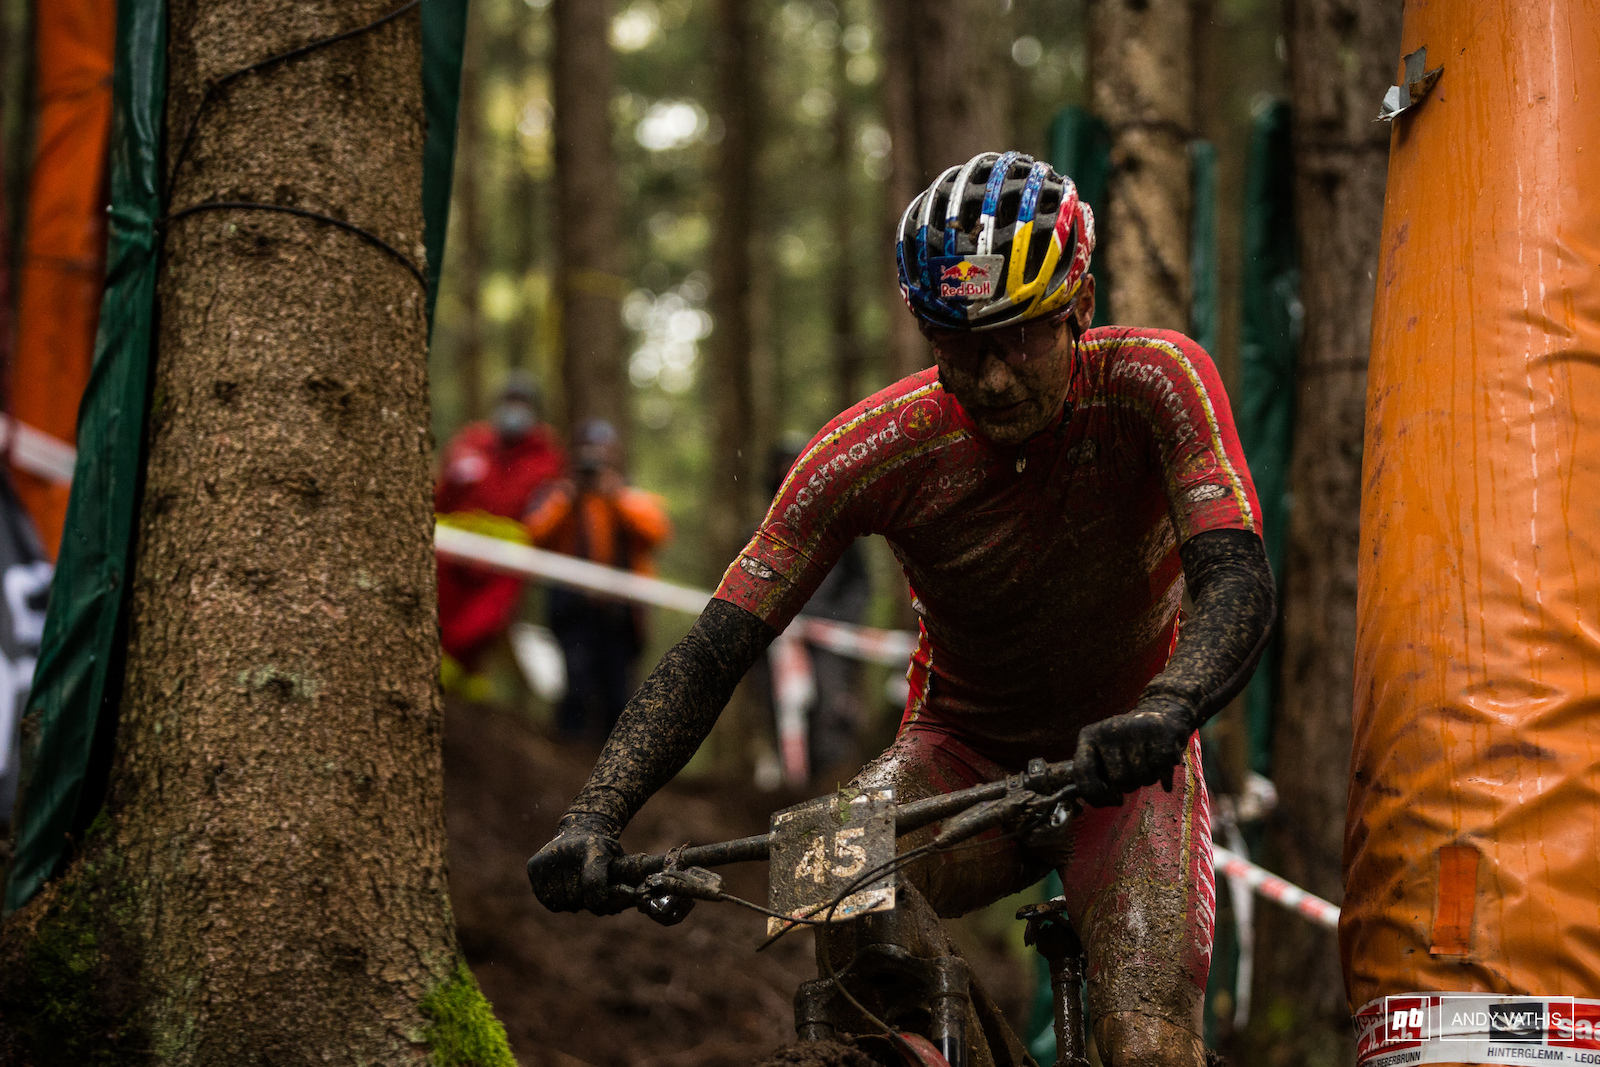 Simone Andreassen pointing and shooting between the pines. Impressive ride from him today.